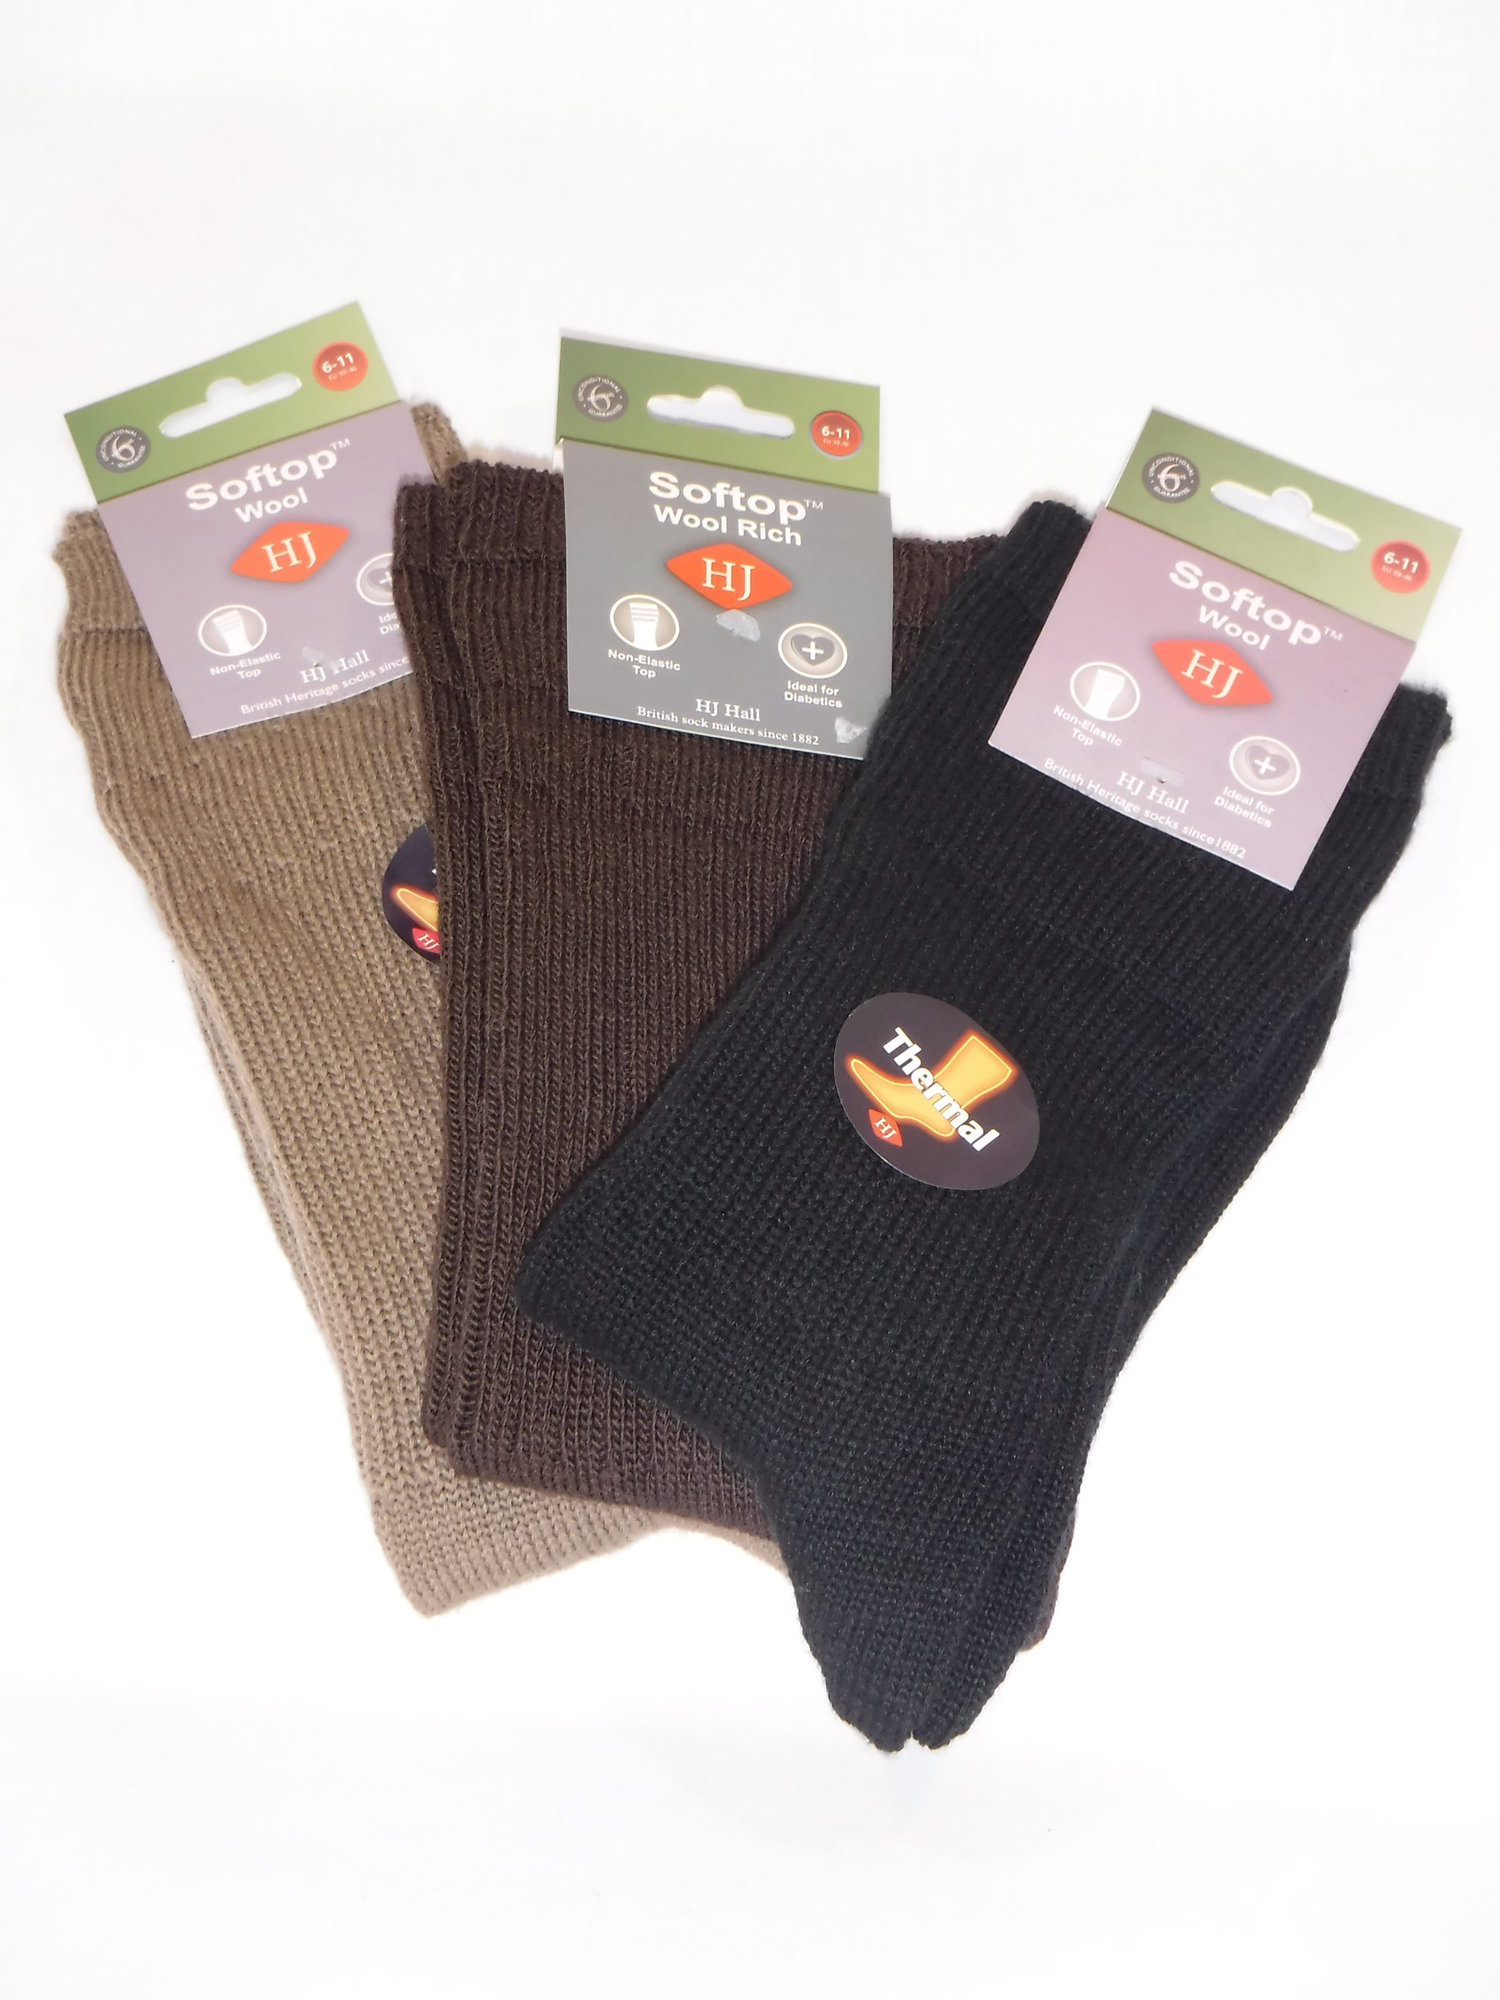 HJ Soft Top Thermal Socks - Assorted 1 pair